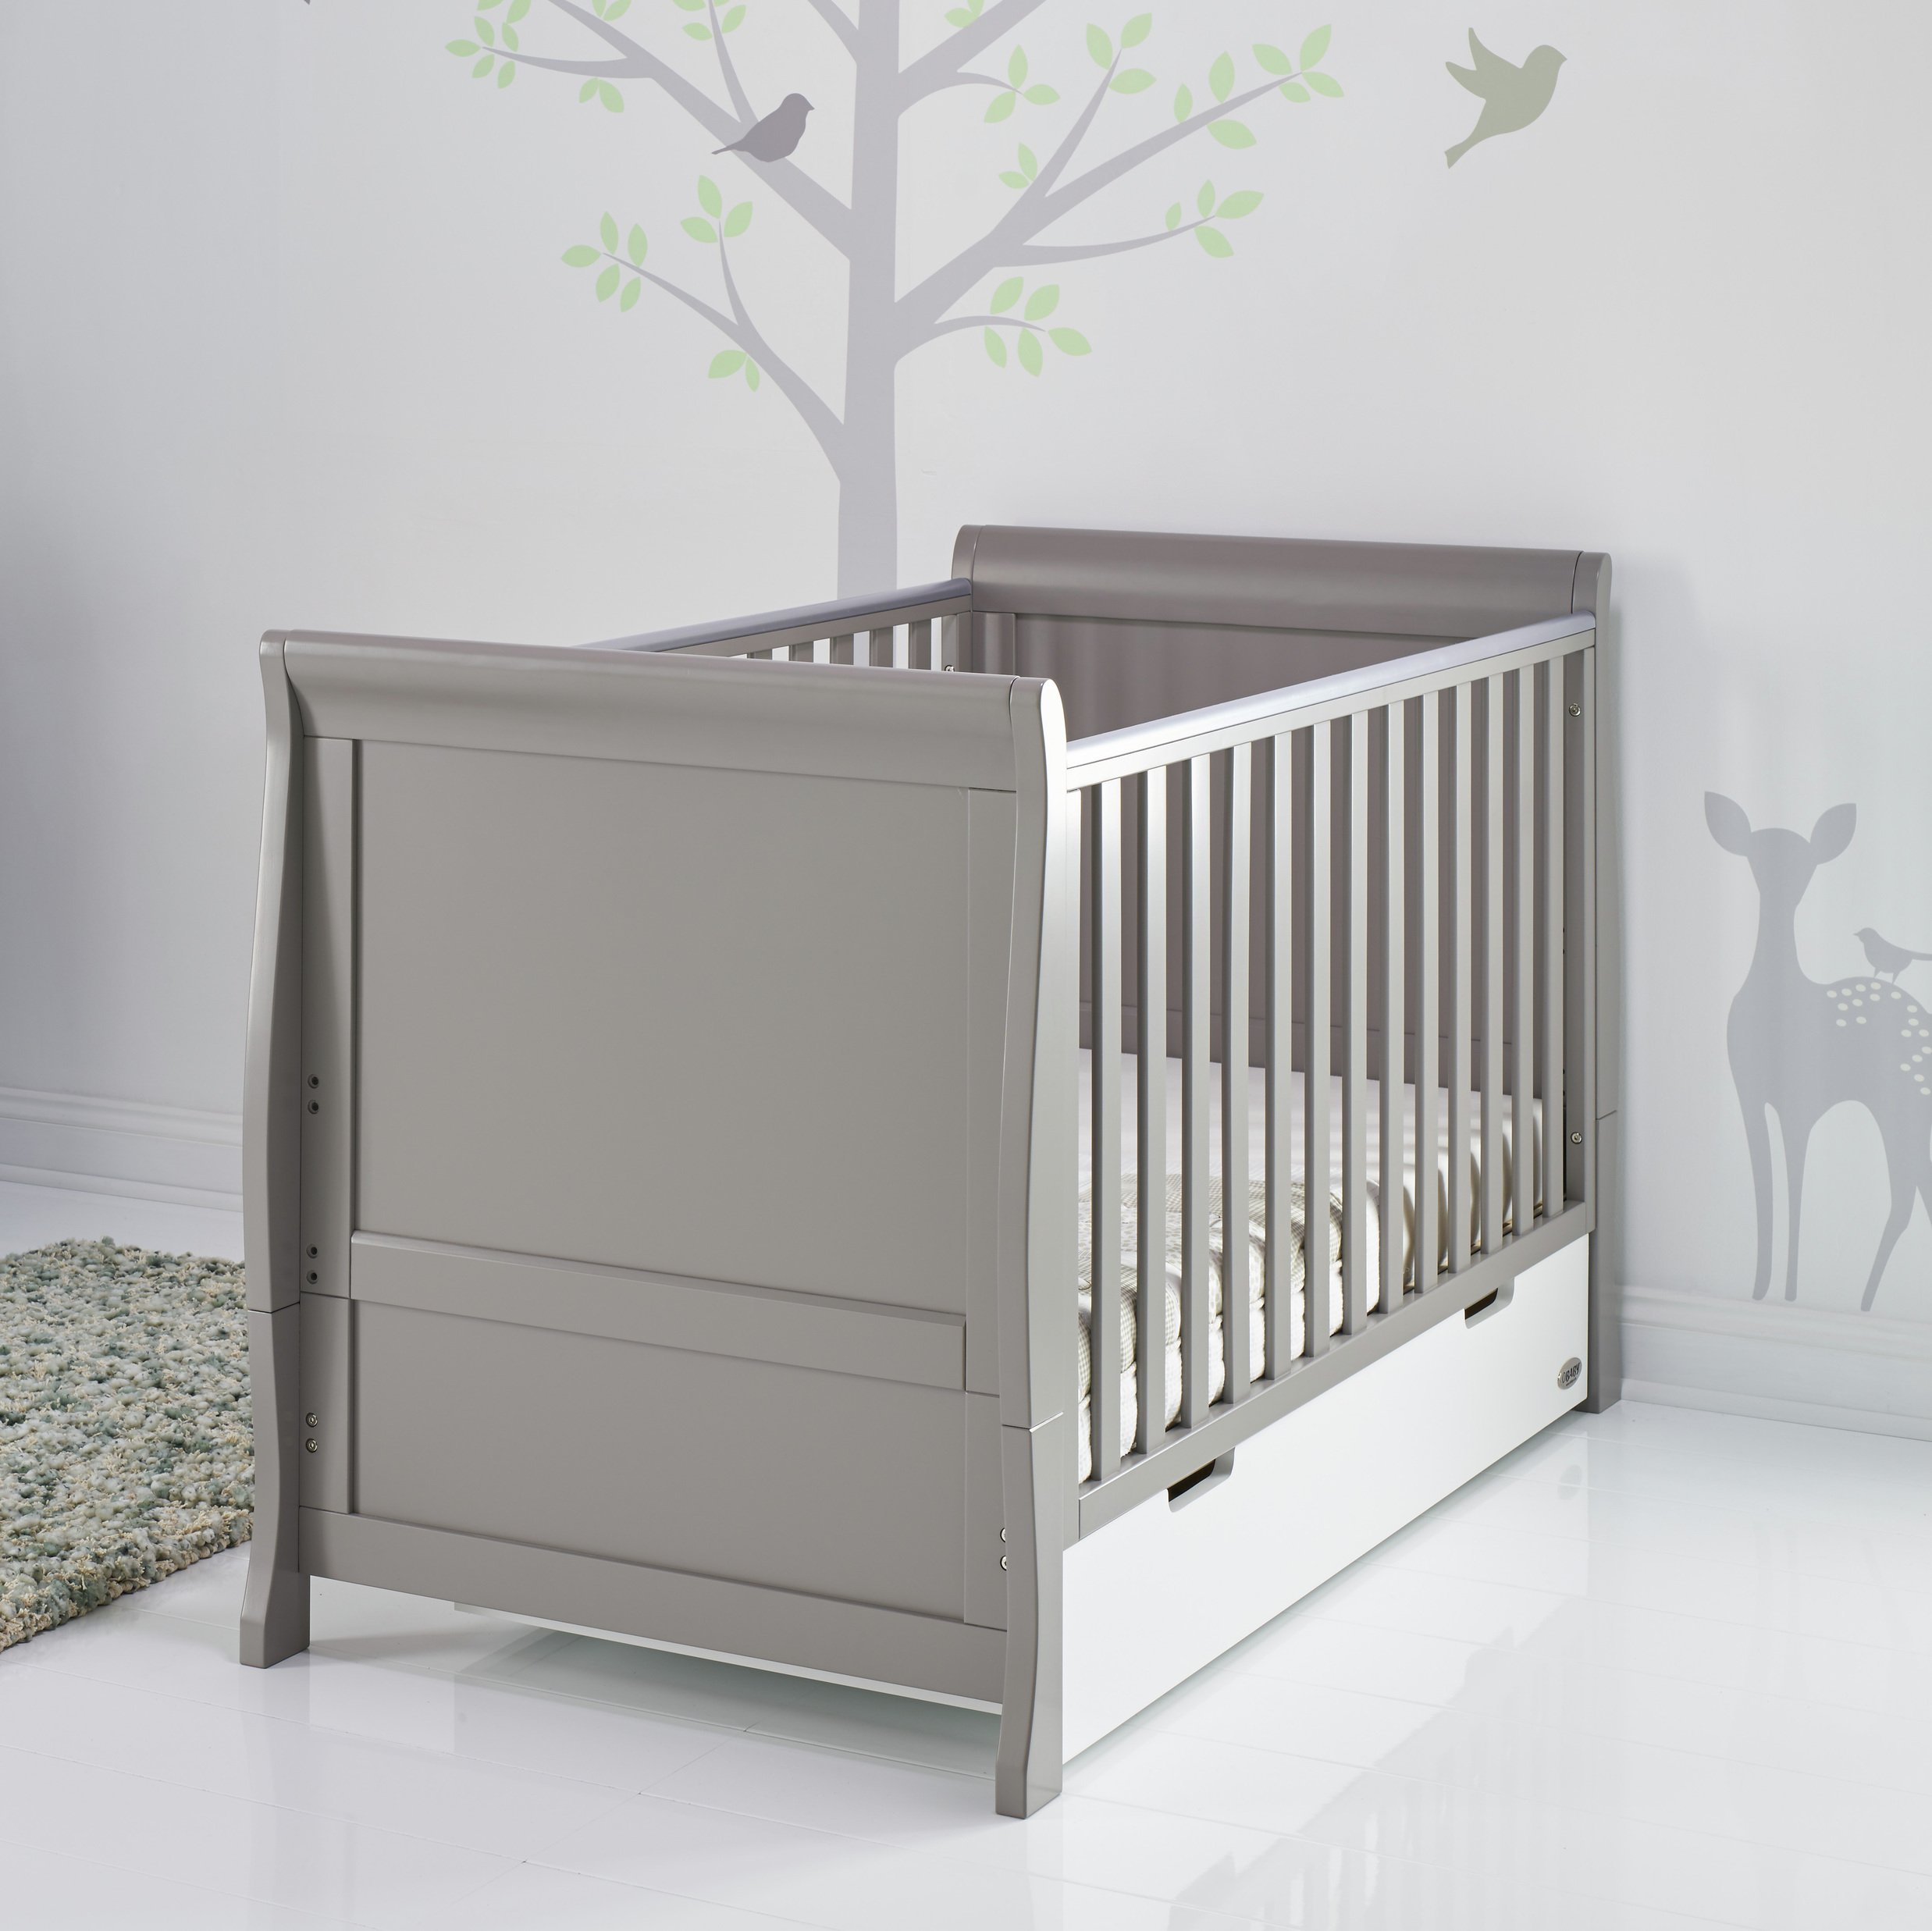 Obaby Stamford Sleigh Cot Bed - Taupe Grey & White